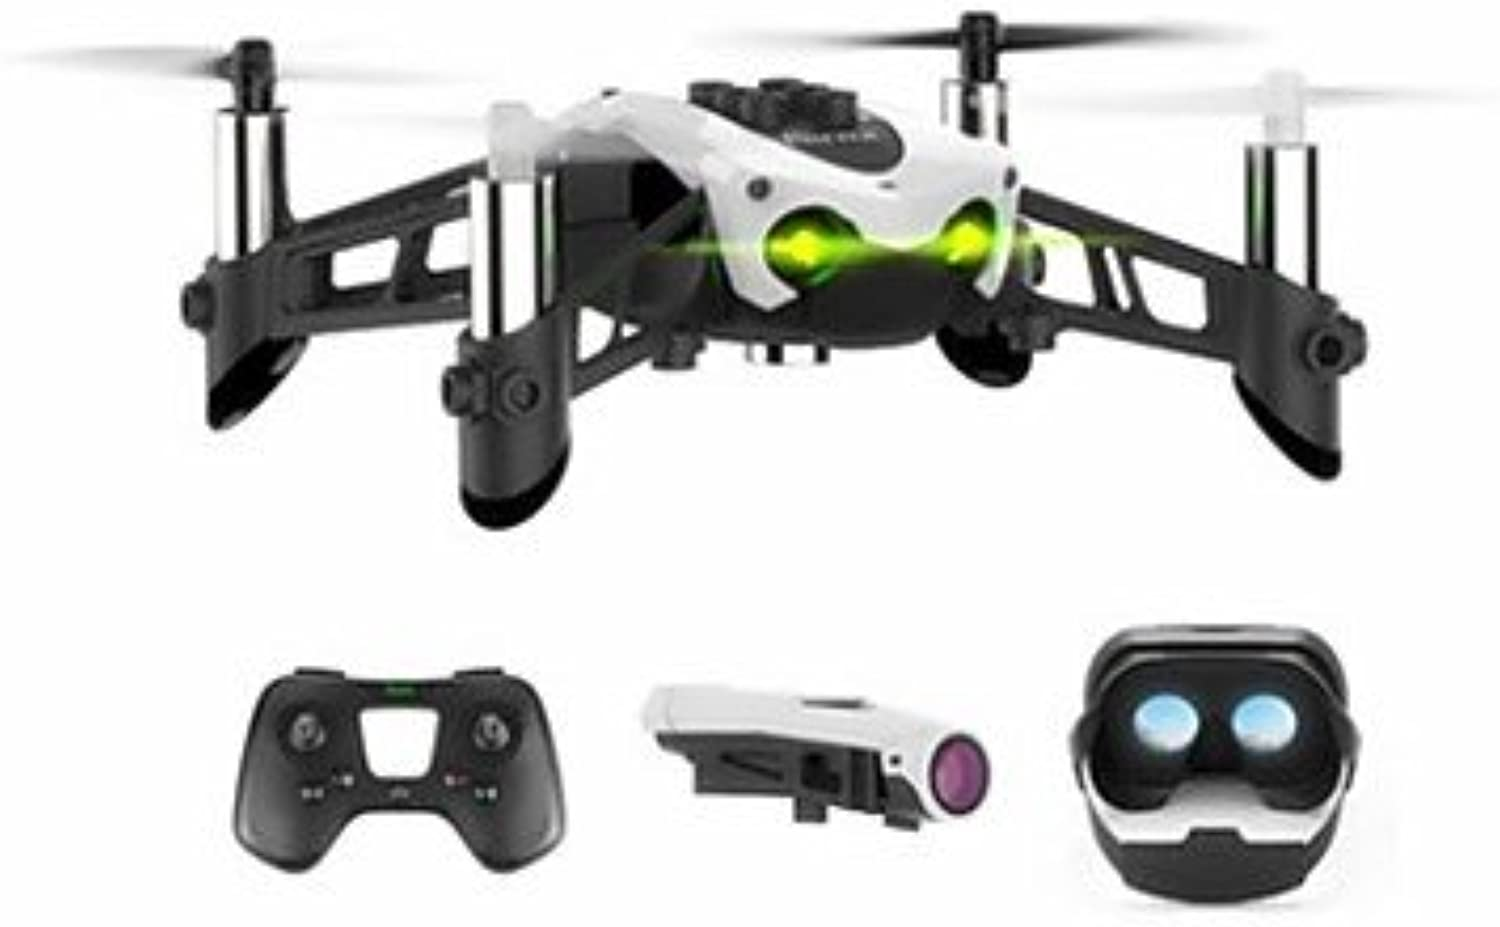 YAMEIJIA RC Drone Drone Drone 4 Channel 3 Axis blueetooth With HD Camera 0.3MP RC Quadcopter FPV With Camera Charging Cable 037cba